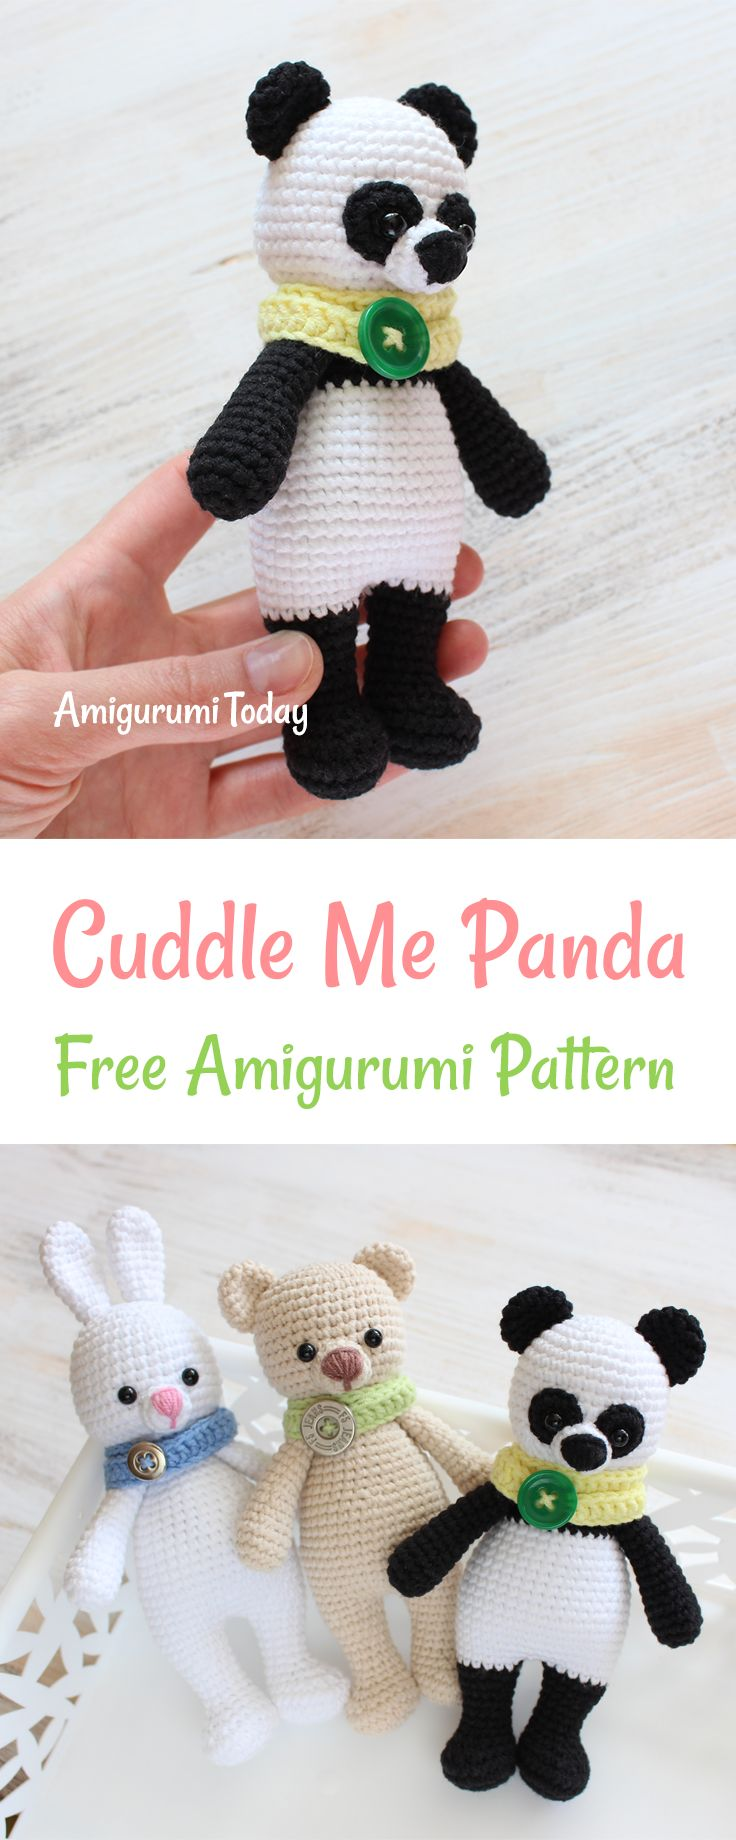 Give a hearty welcome to this little crochet Panda from the Cuddle Me toy family! Just like in the wild, it's a little clumsy and curious about new things. It is awaiting the opportunity to play and cuddle with your kid and guard him or her at night. The Cuddle Me Panda Amigurumi Pattern will make a wonderful gift for all panda lovers!